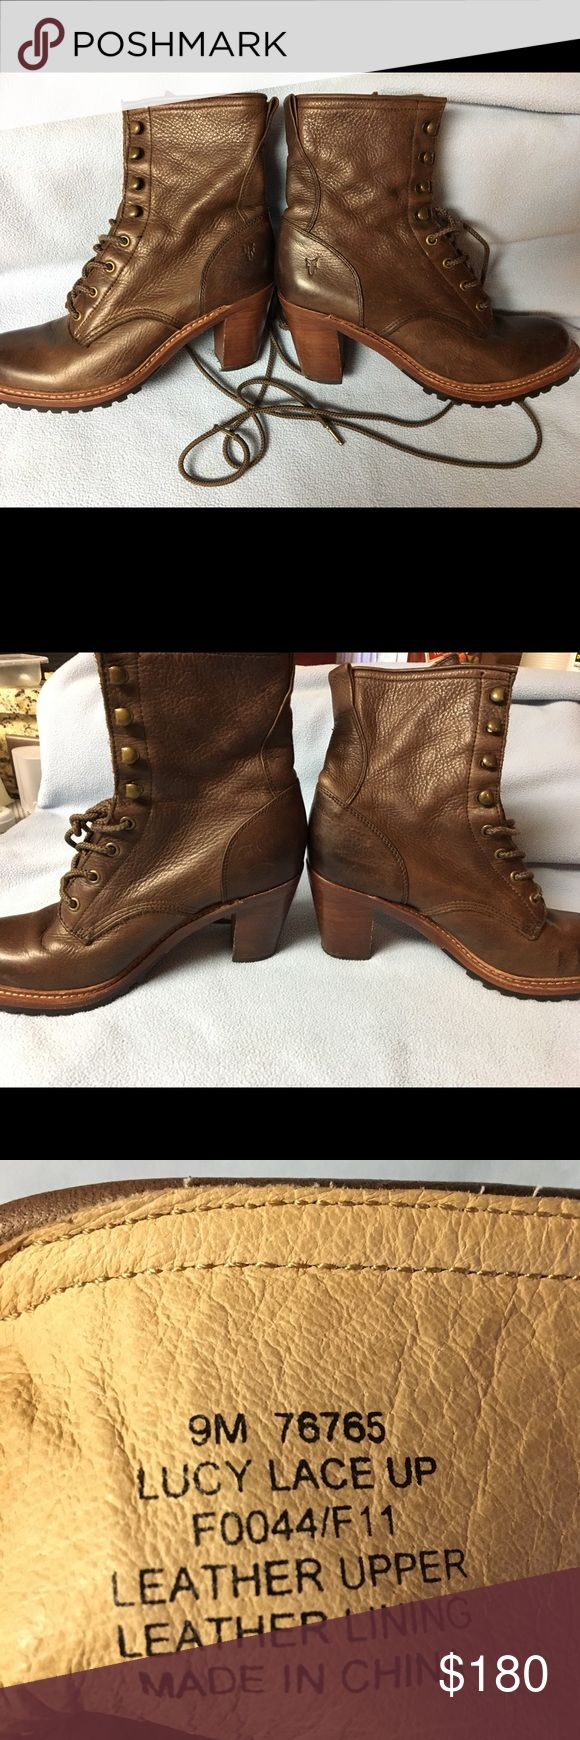 Fry Boots Style-Lucy Lace Up. Excellent condition like new. Frye Shoes Heeled Boots